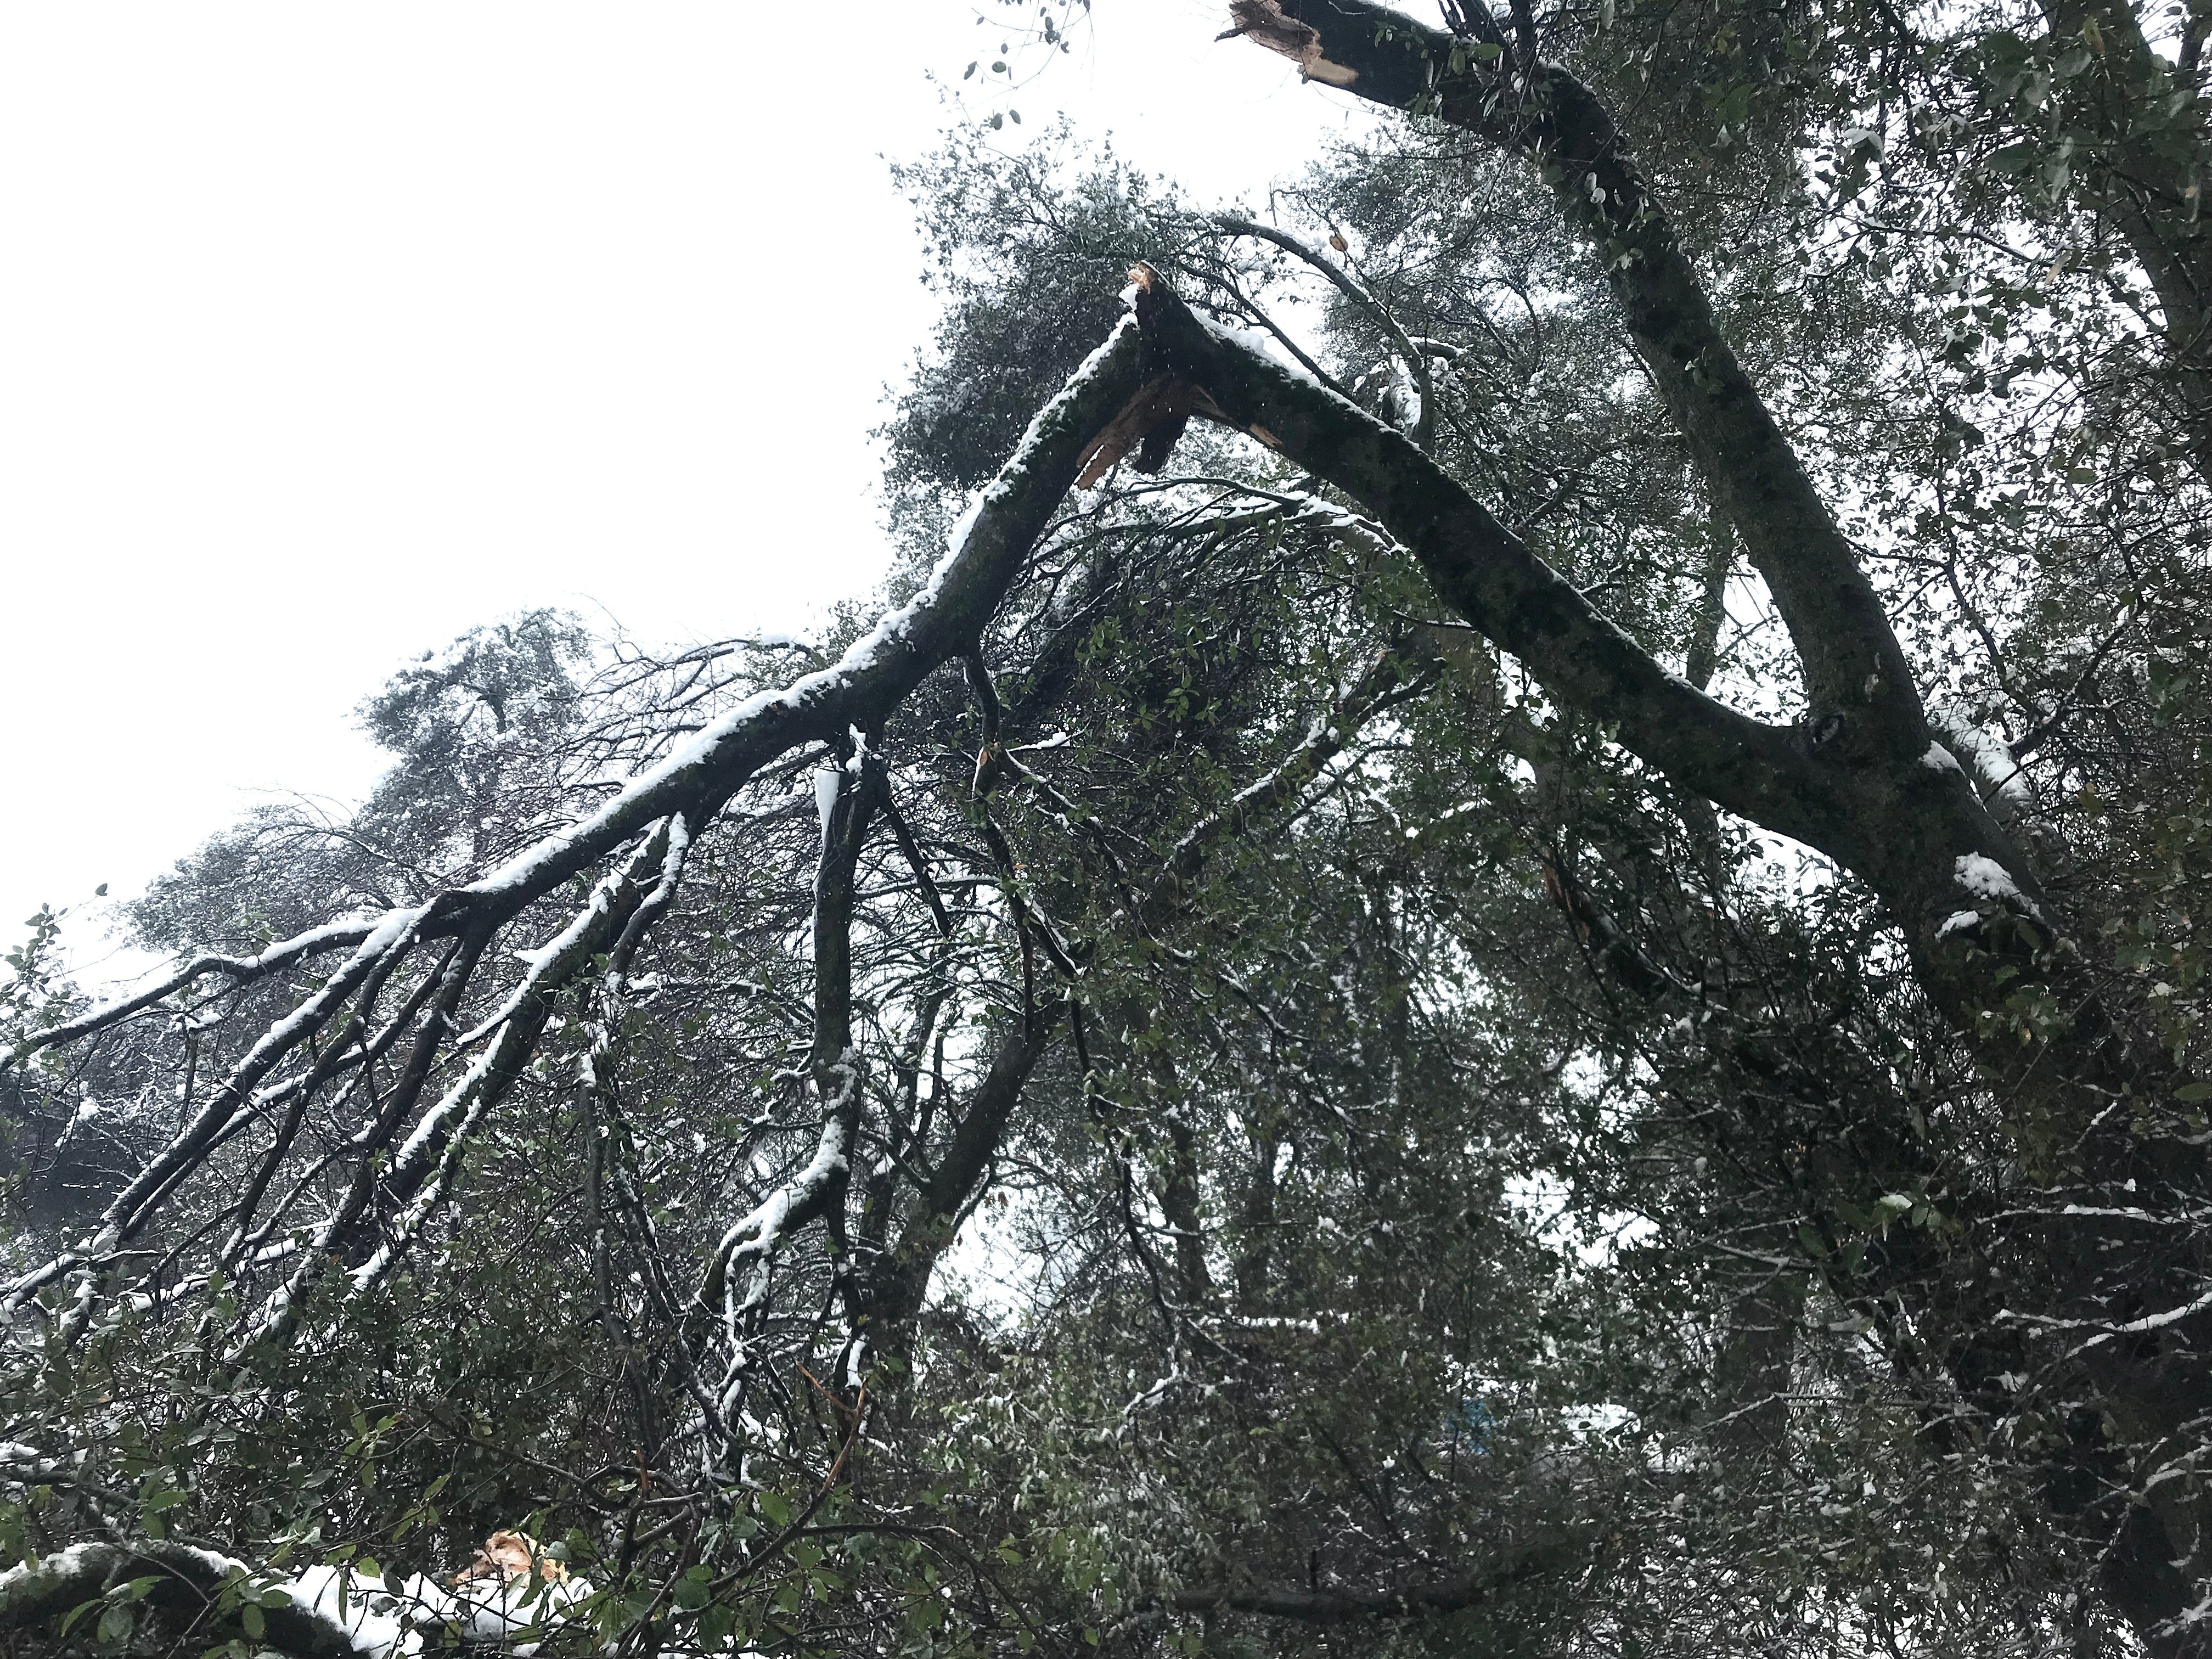 Hundreds of trees suffered broken branches across the North State during the snow storm.